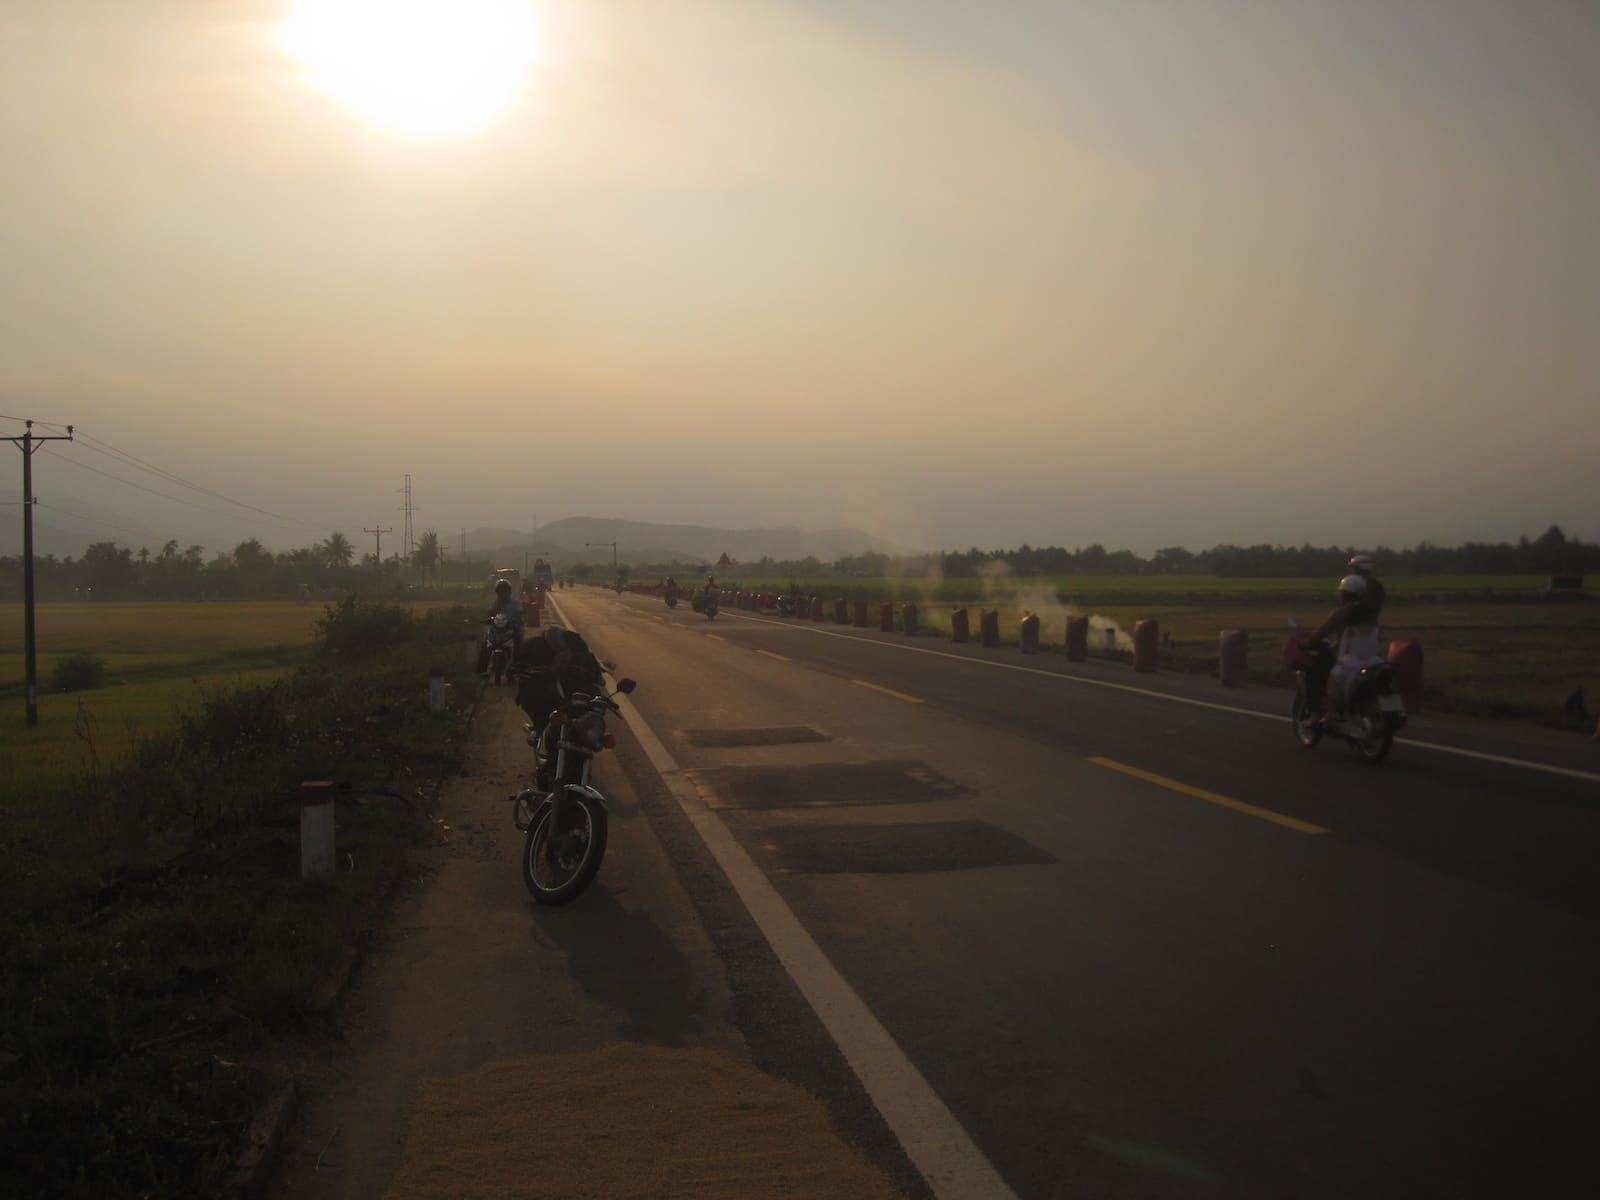 Image of the road on the trip south to north in vietnam